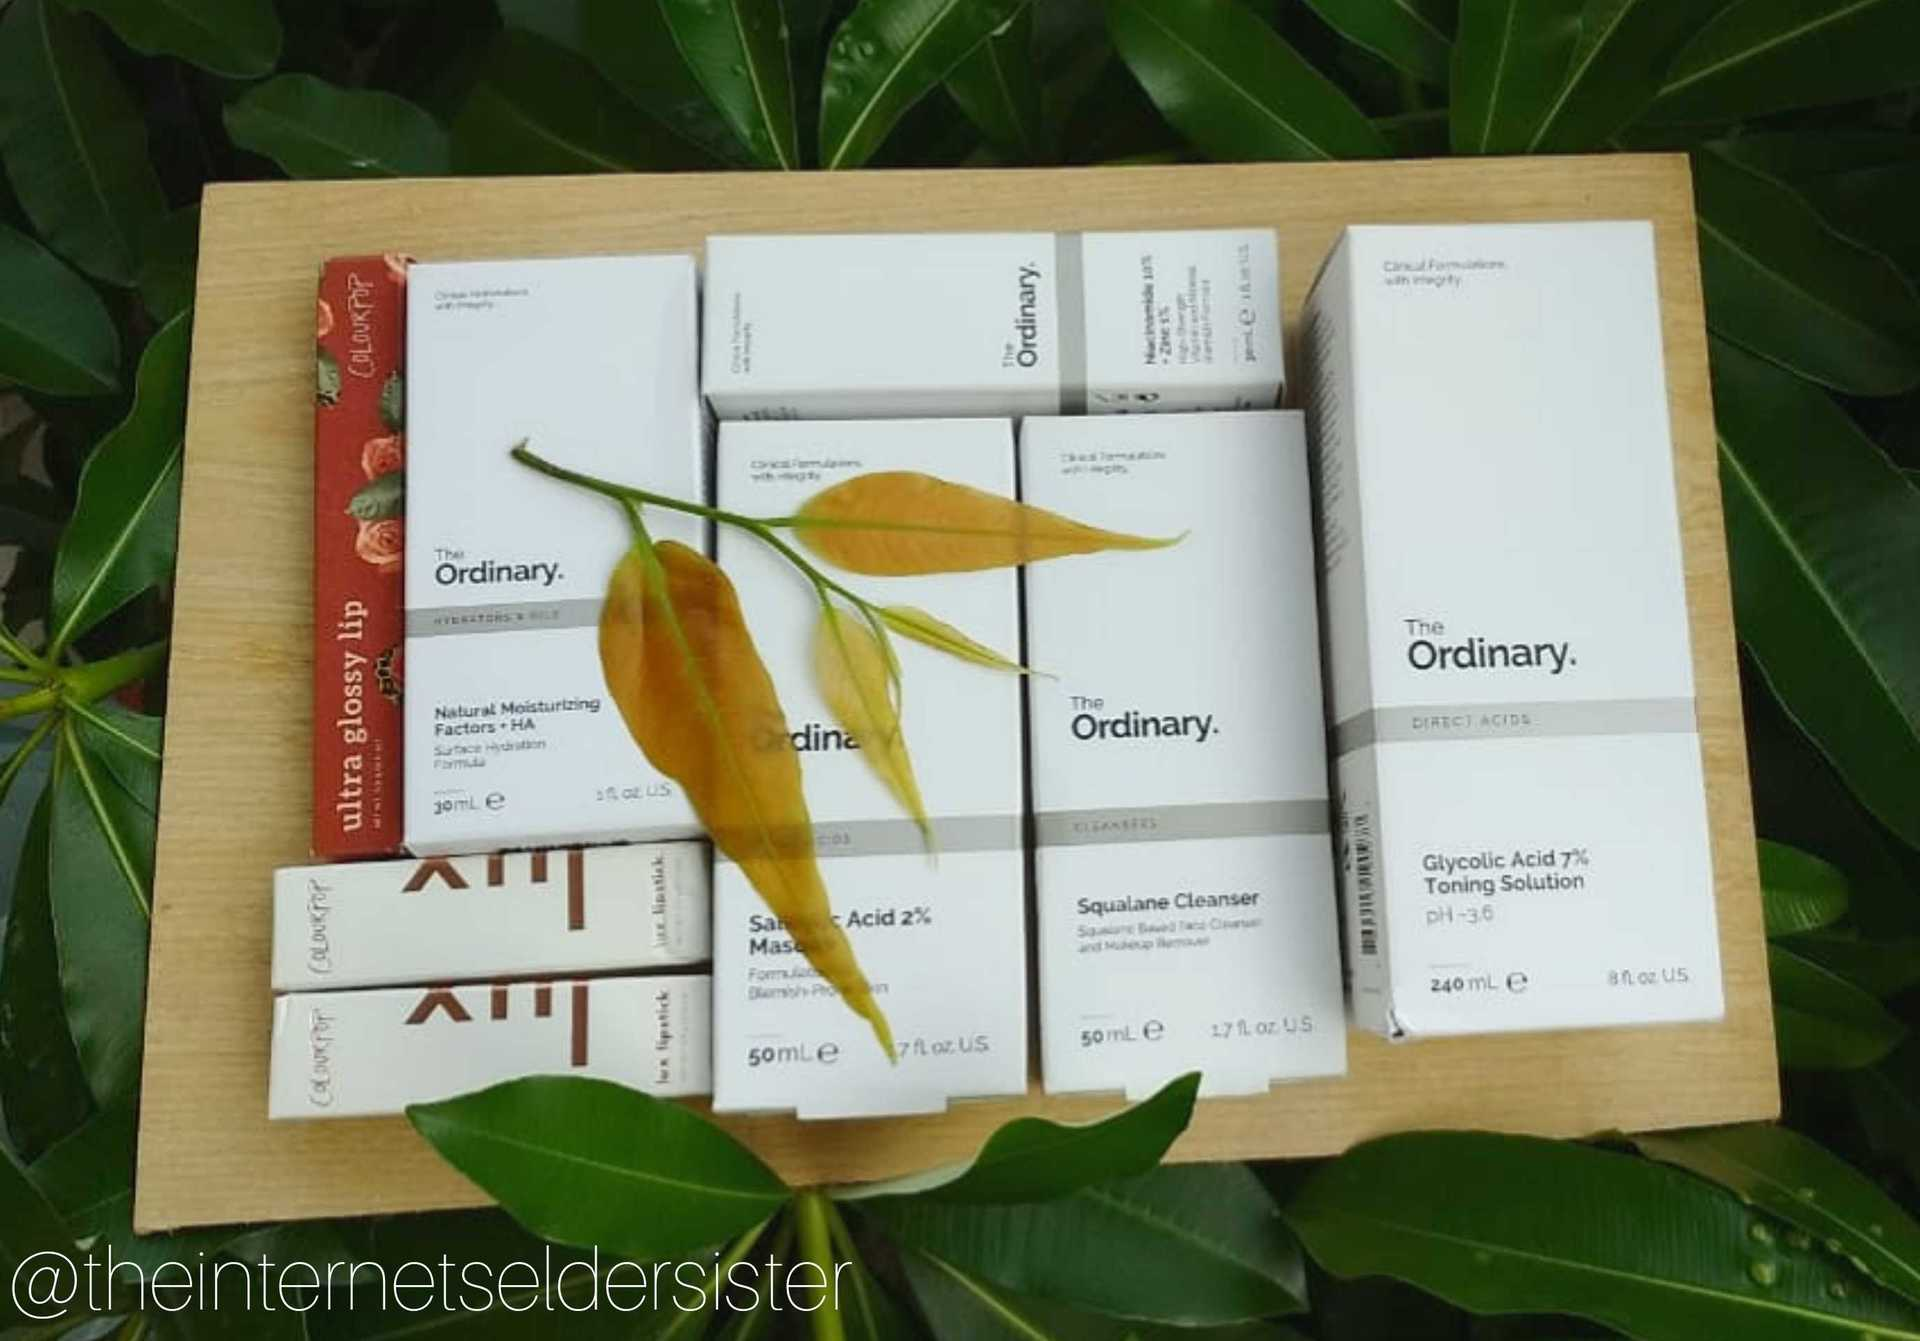 The ordinary skincare - part 1 image